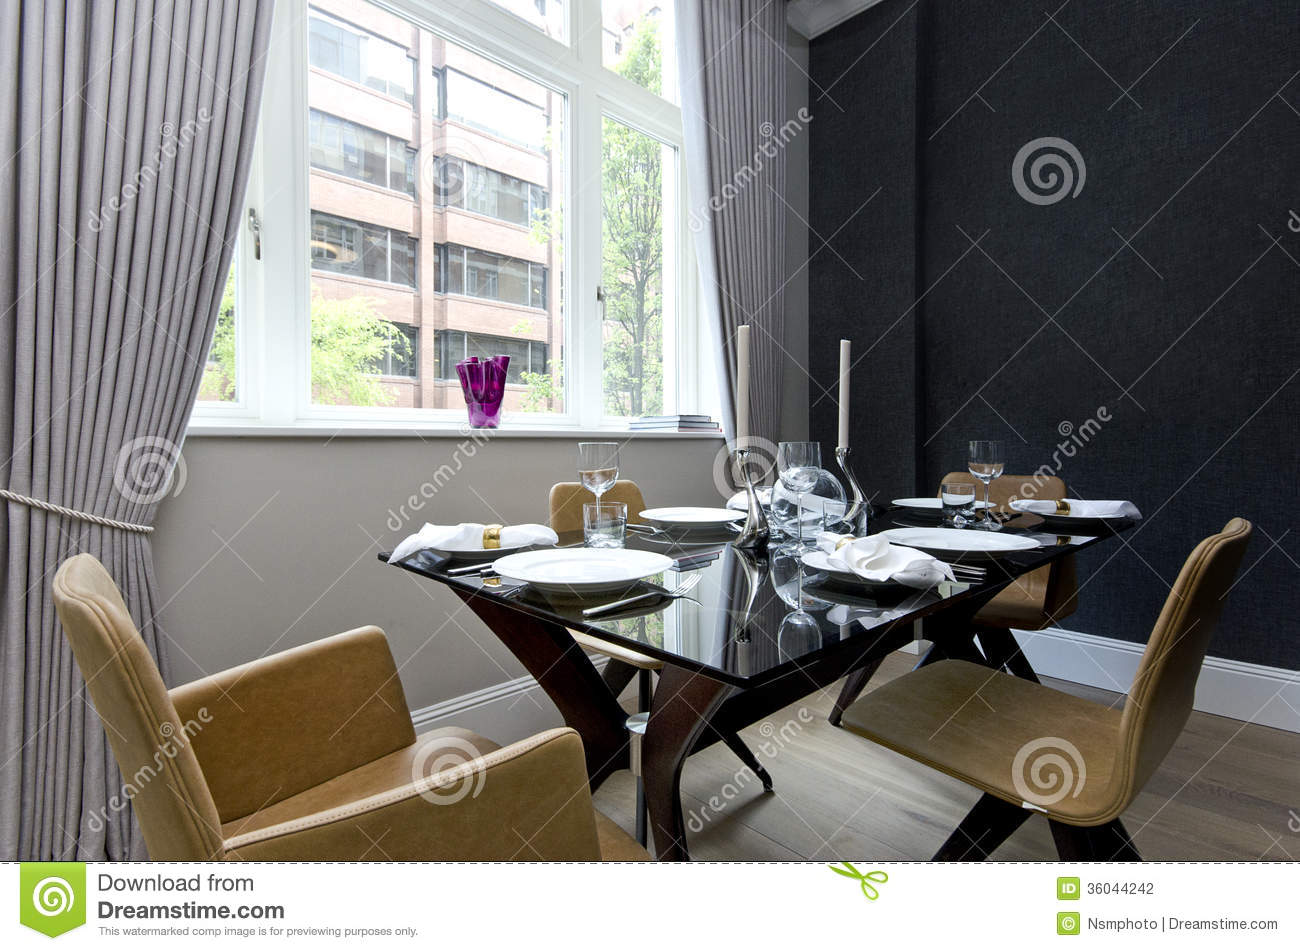 Modern Dining Room With Dinner Set-up For Four Stock